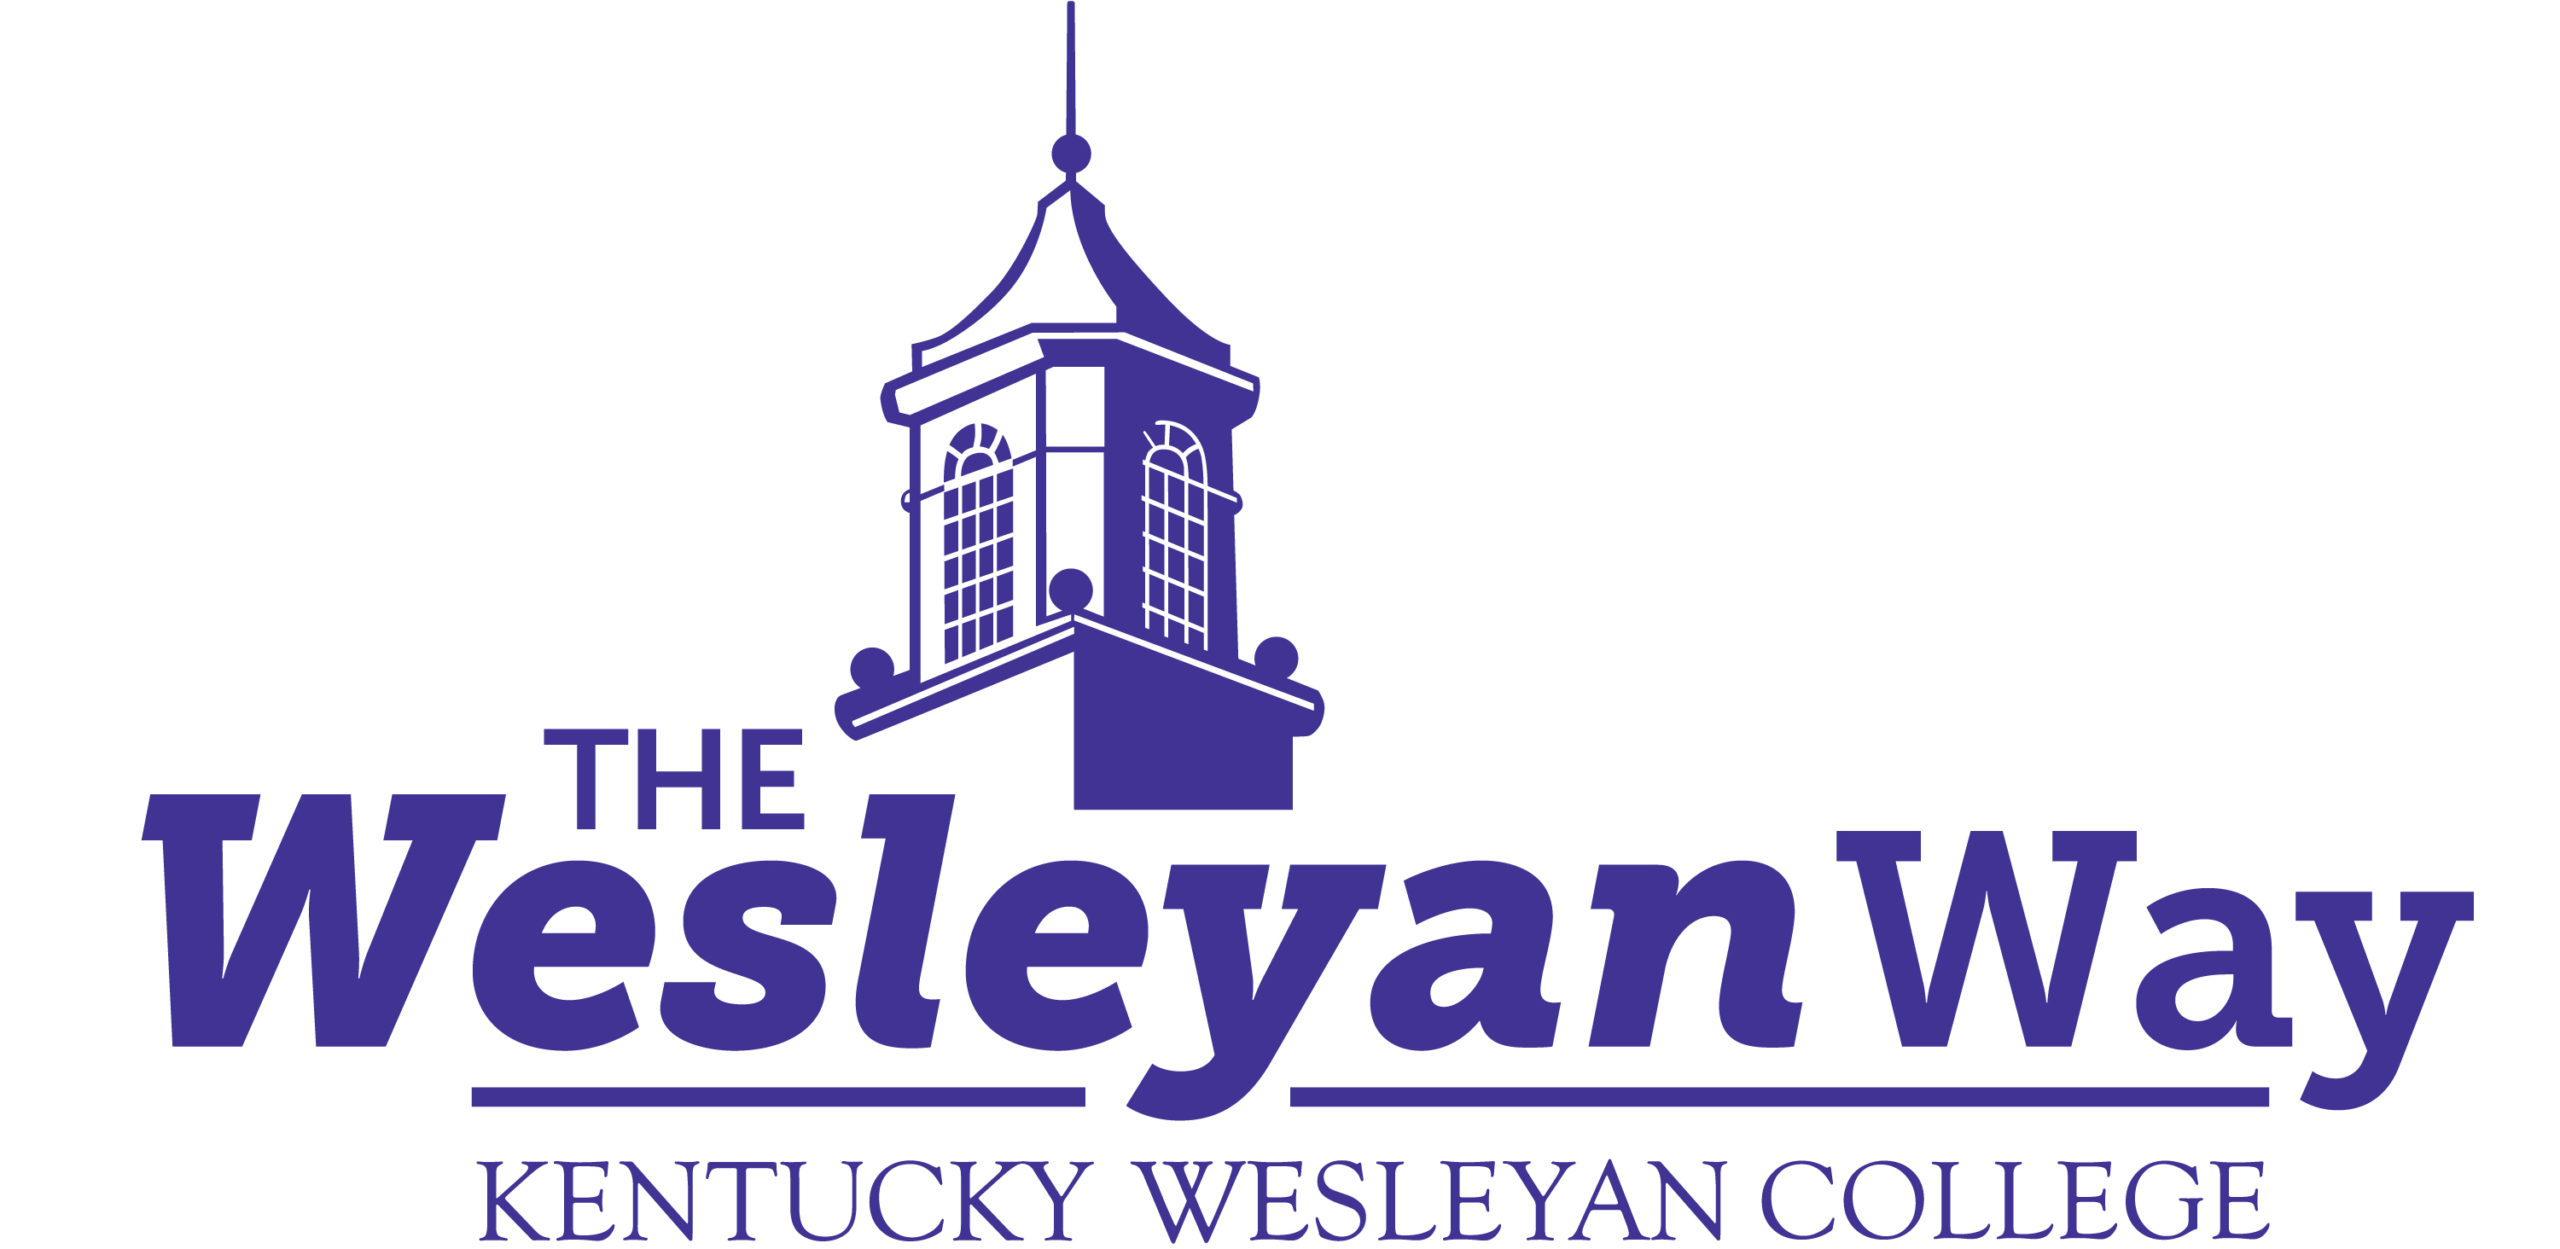 Kentucky Wesleyan earns two Top 10 rankings from U.S. News & World Report